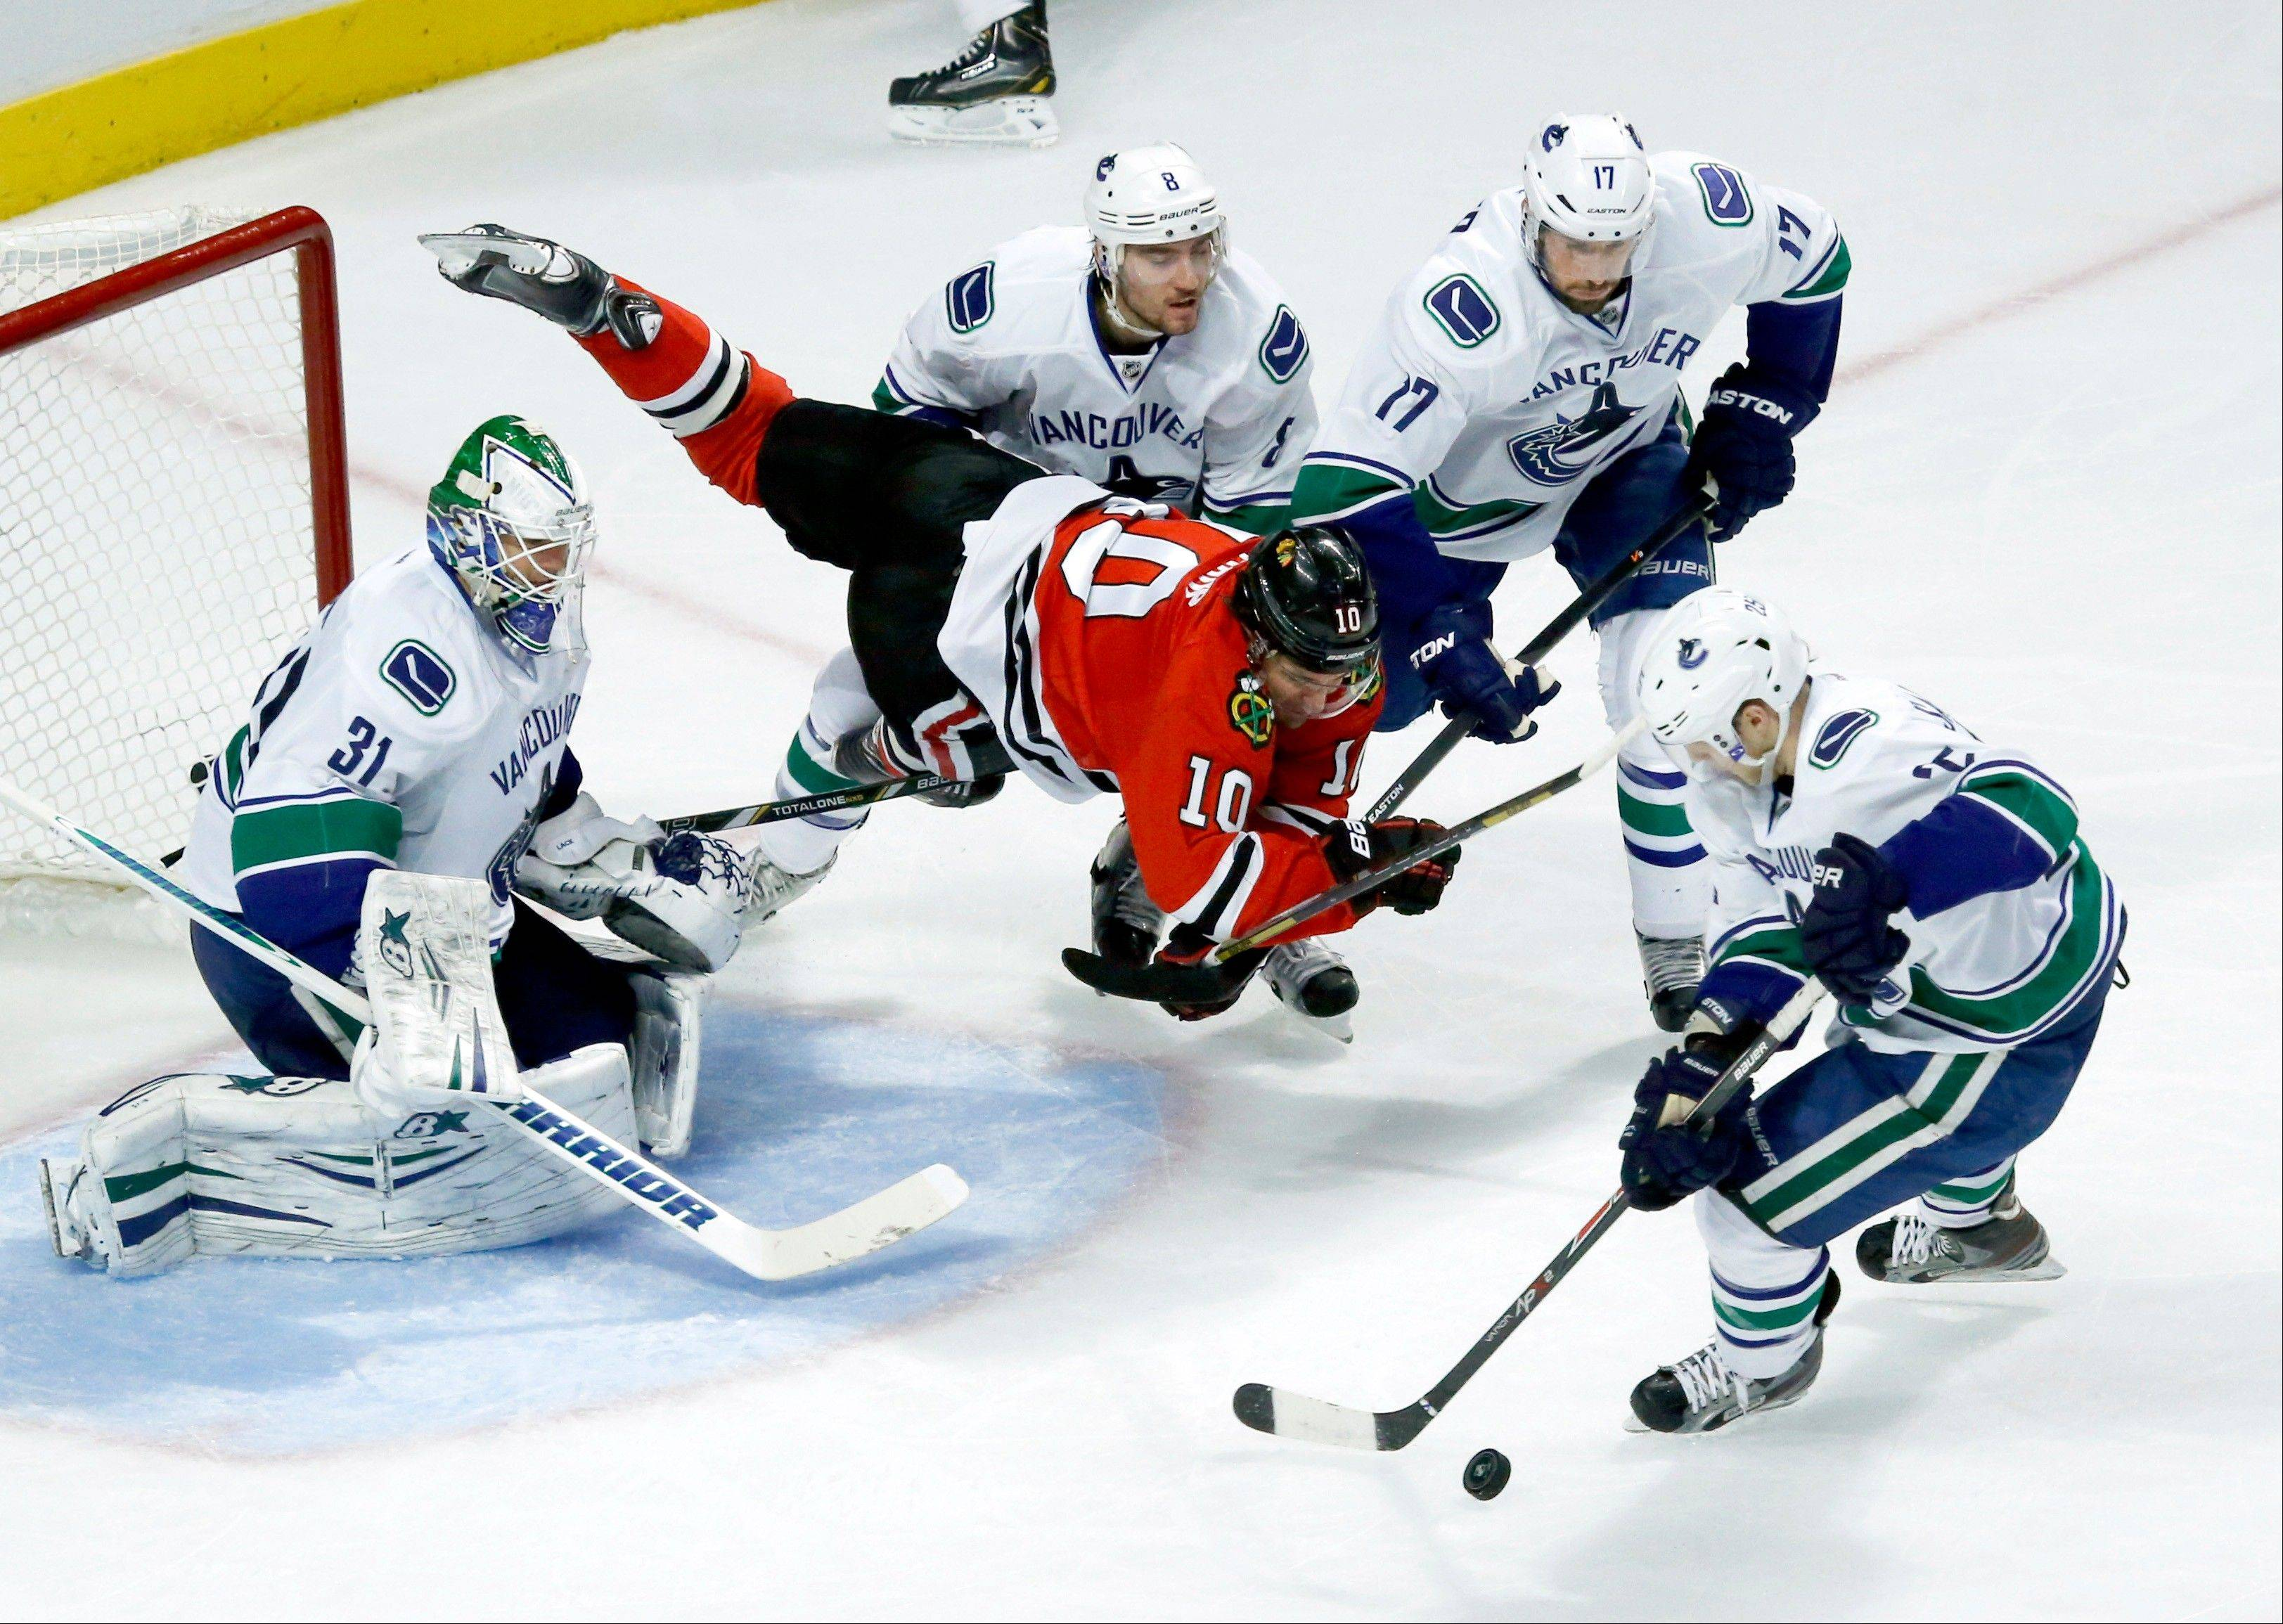 Canucks center Mike Santorelli, right, clears the puck after the Blackhawks� Patrick Sharp tried to split the defense of goalie Eddie Lack, Chris Tanev (8) and Ryan Kesler (17) in the third period Friday night.